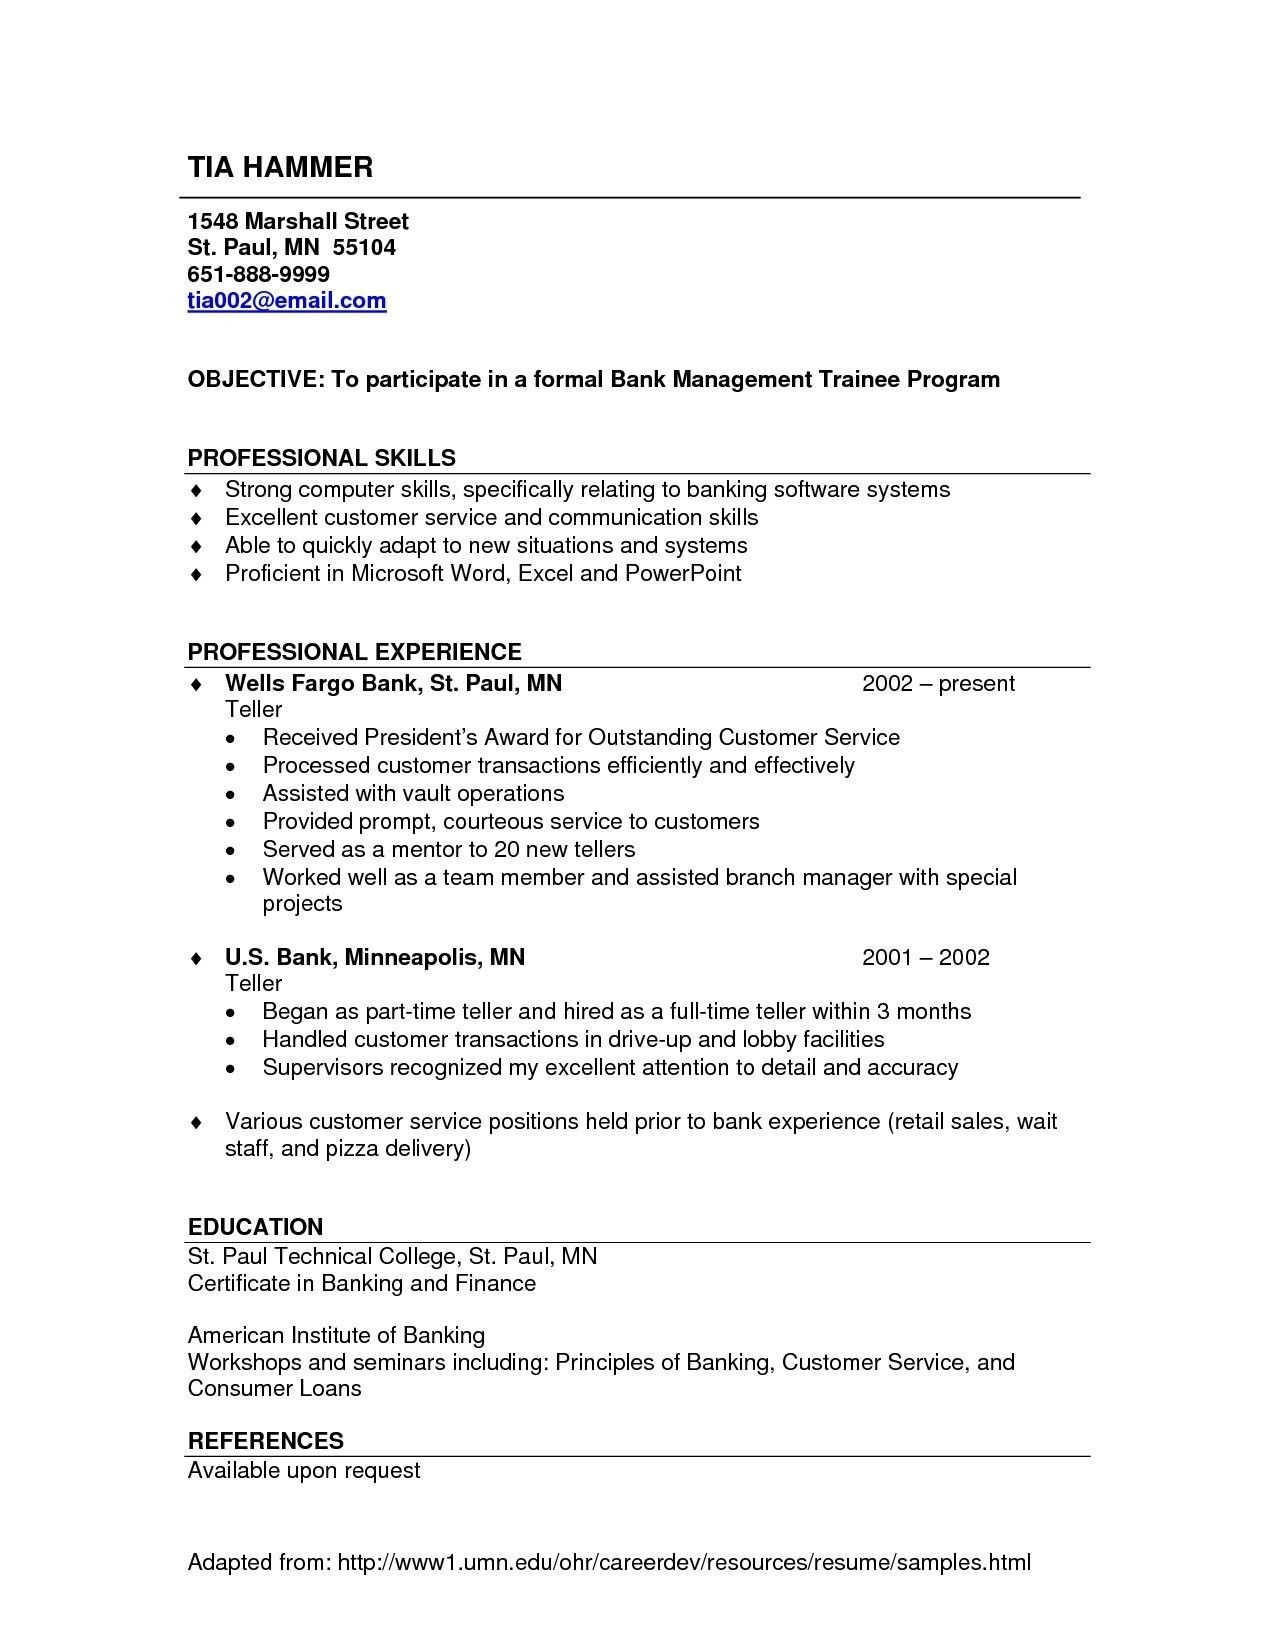 Here Some Writing Tips And Examples Of Human Resources Resume